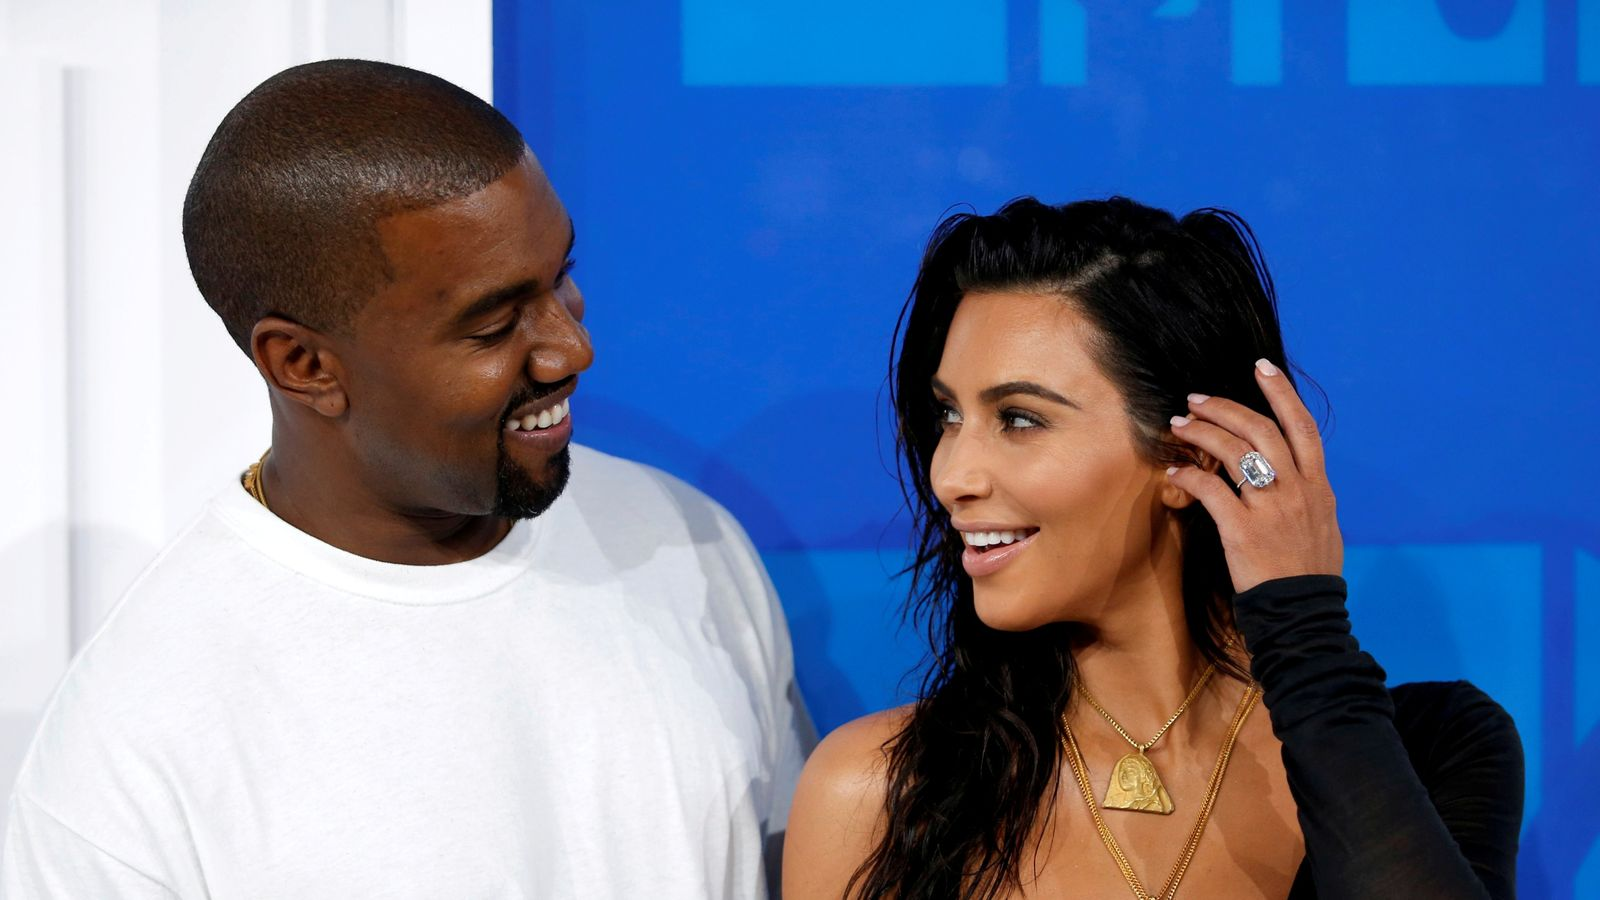 Kim K reveals Kanye's $1m charity donation for her birthday